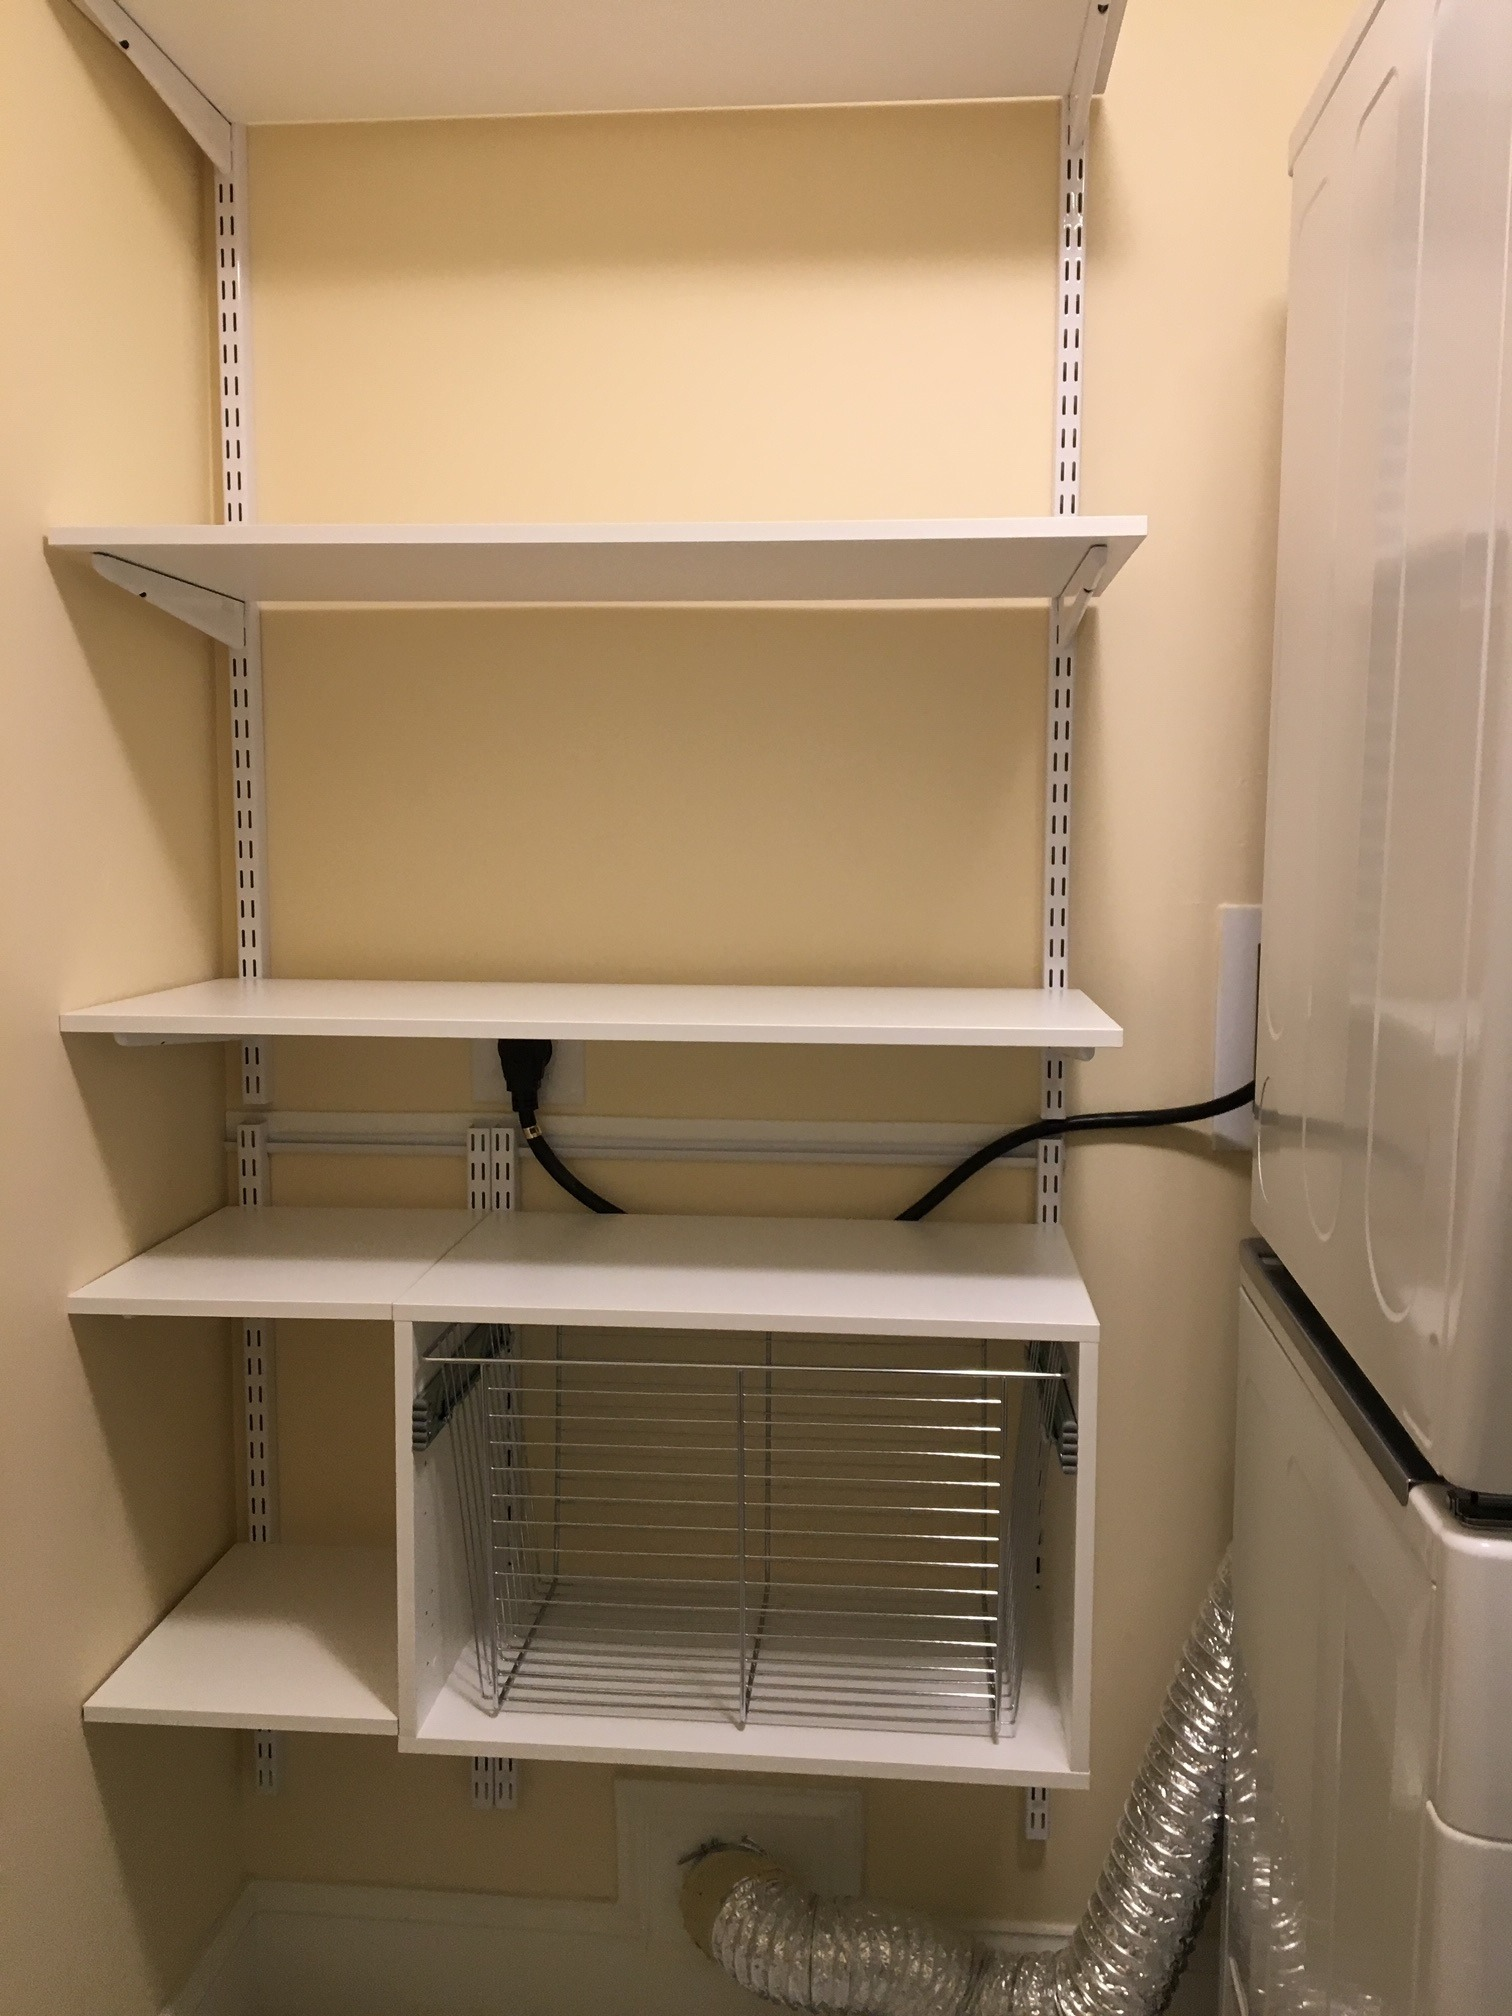 Freedom Rail in Laundry Room